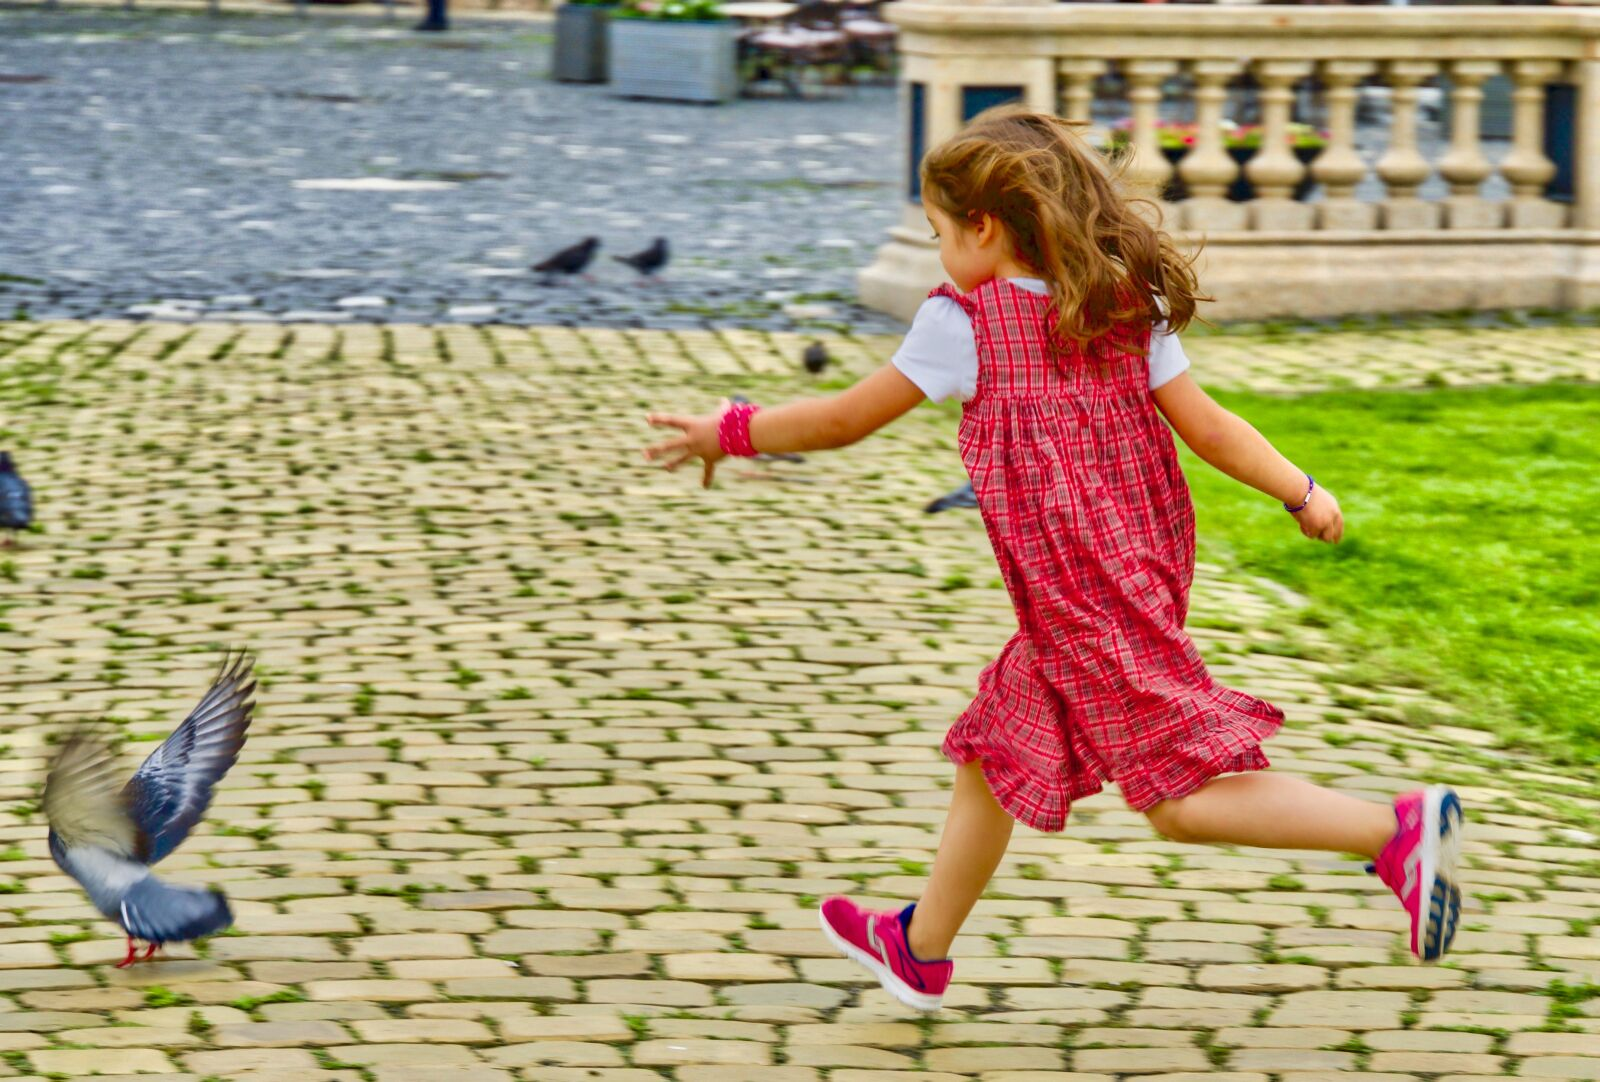 """Sony a6500 sample photo. """"Girl, chase, pigeon"""" photography"""